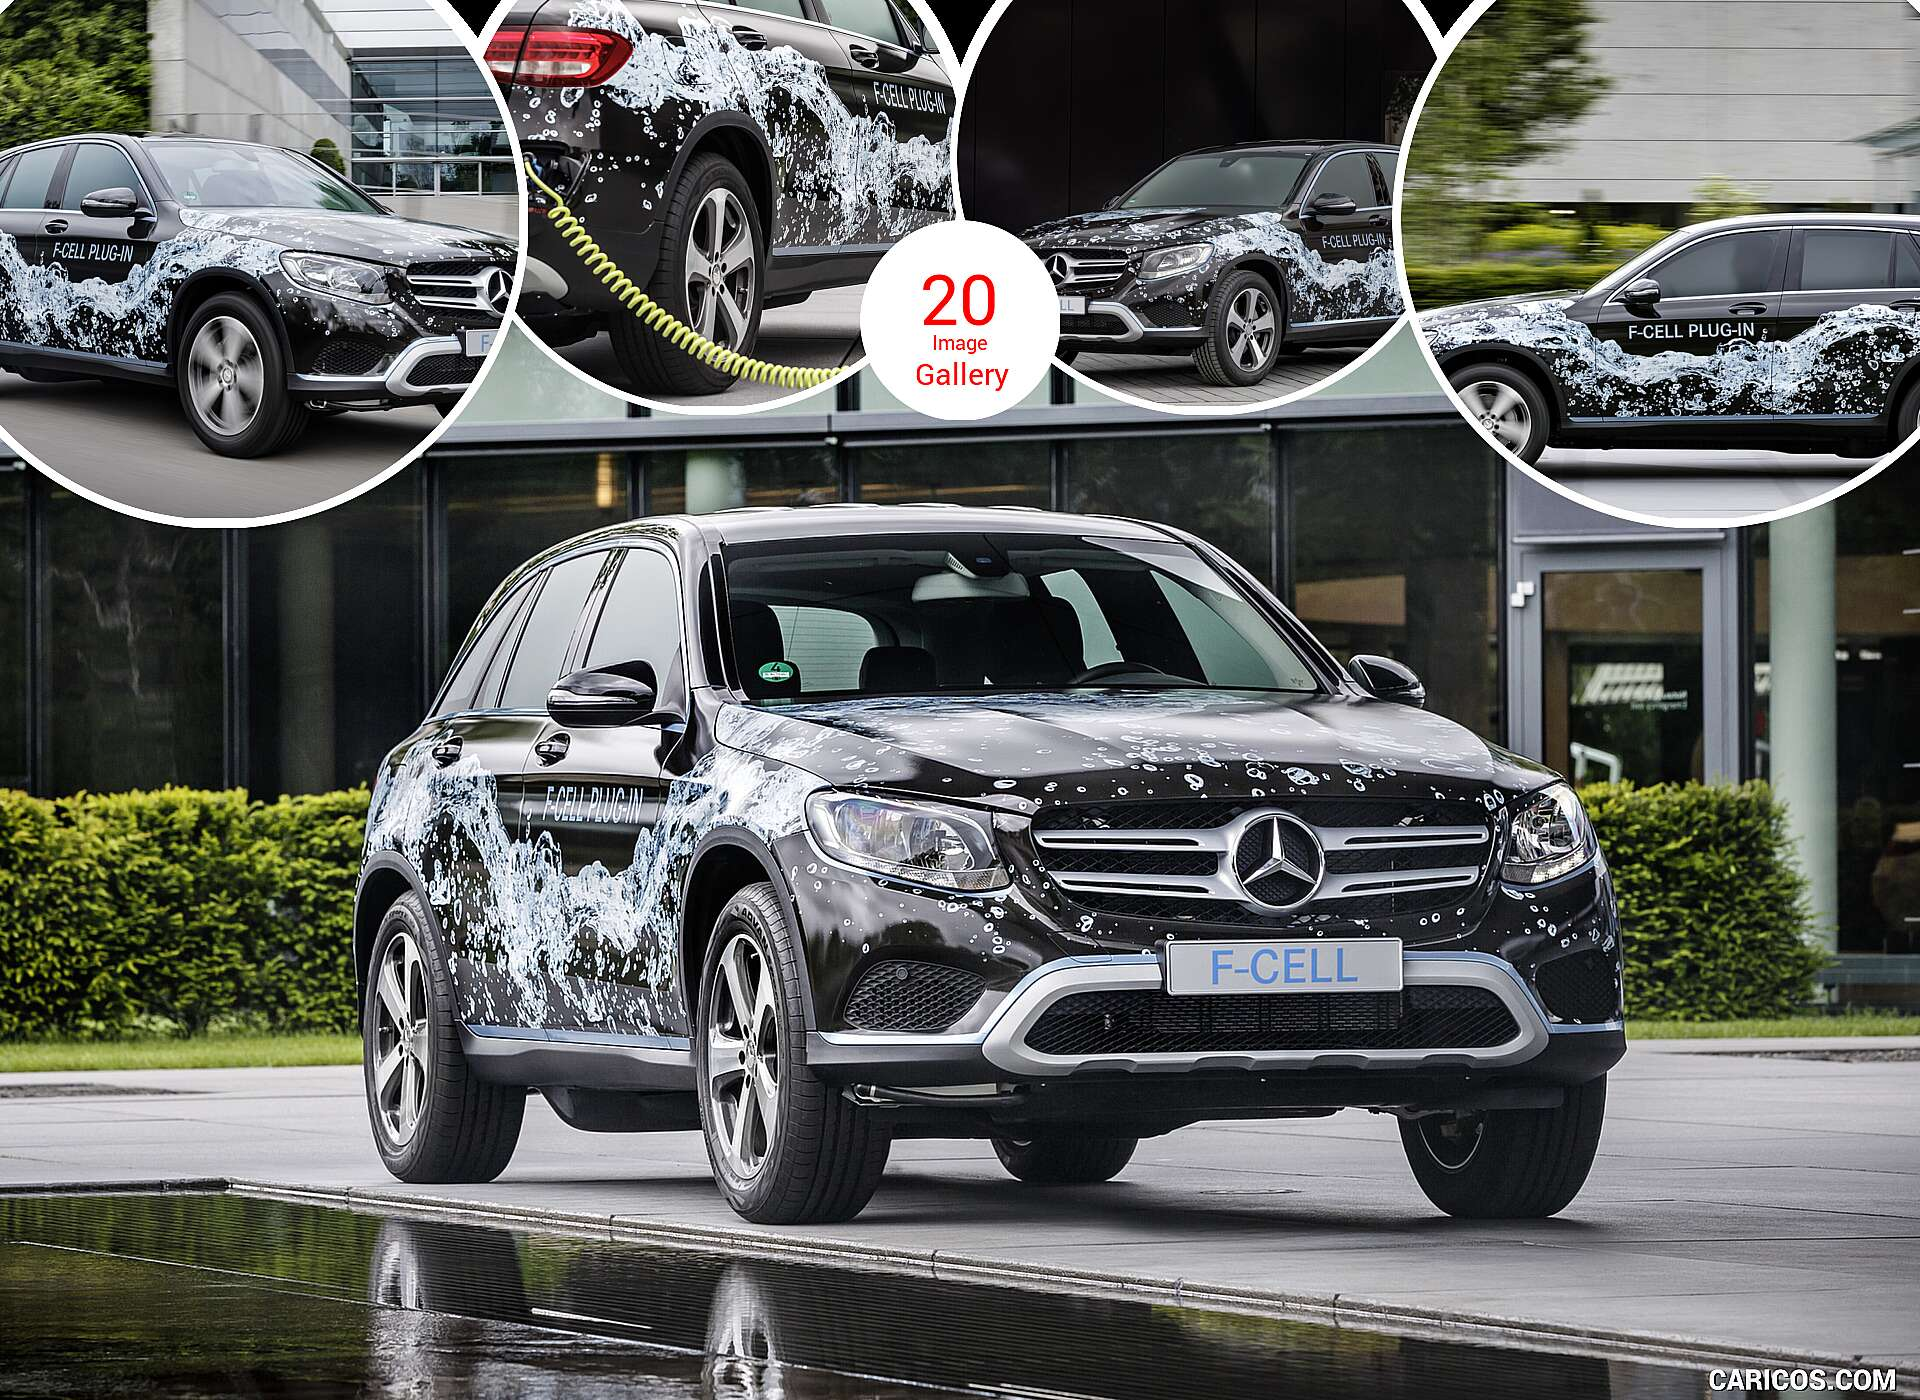 2016 Mercedes-Benz GLC F-Cell Plug-In Concept